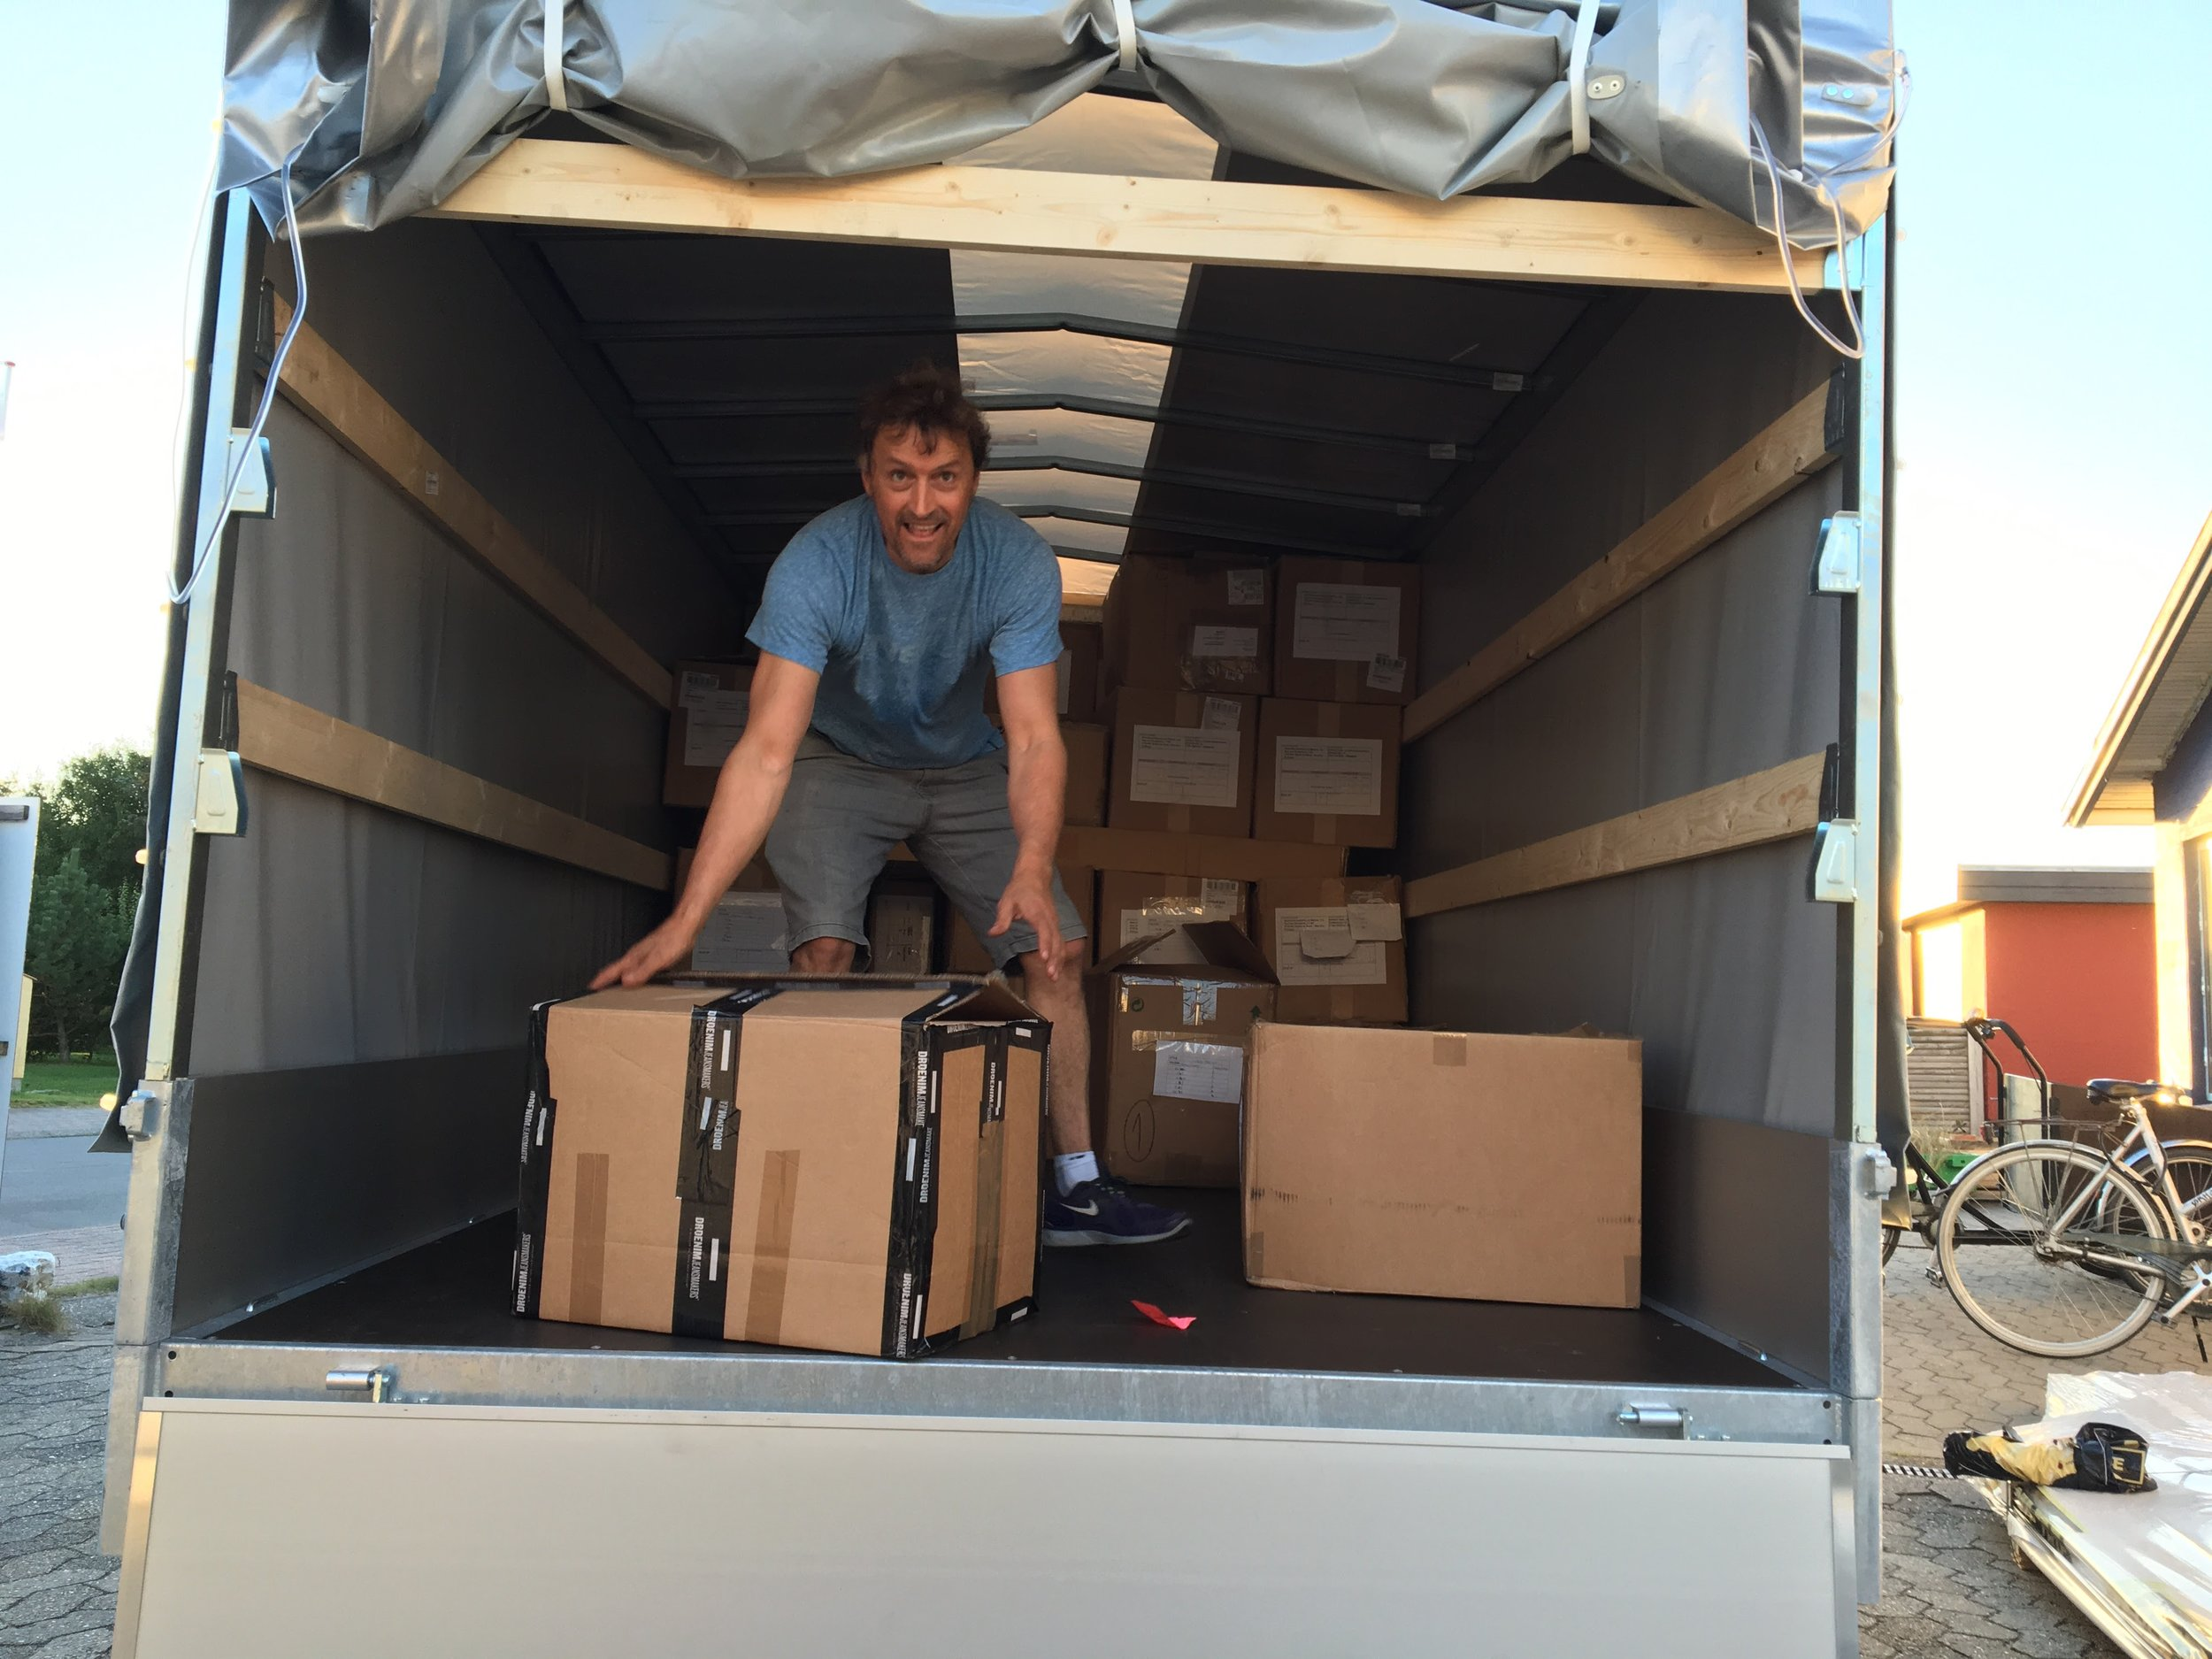 Our good friend, Mathias Nielsen, helped us move everything from the back of the building.